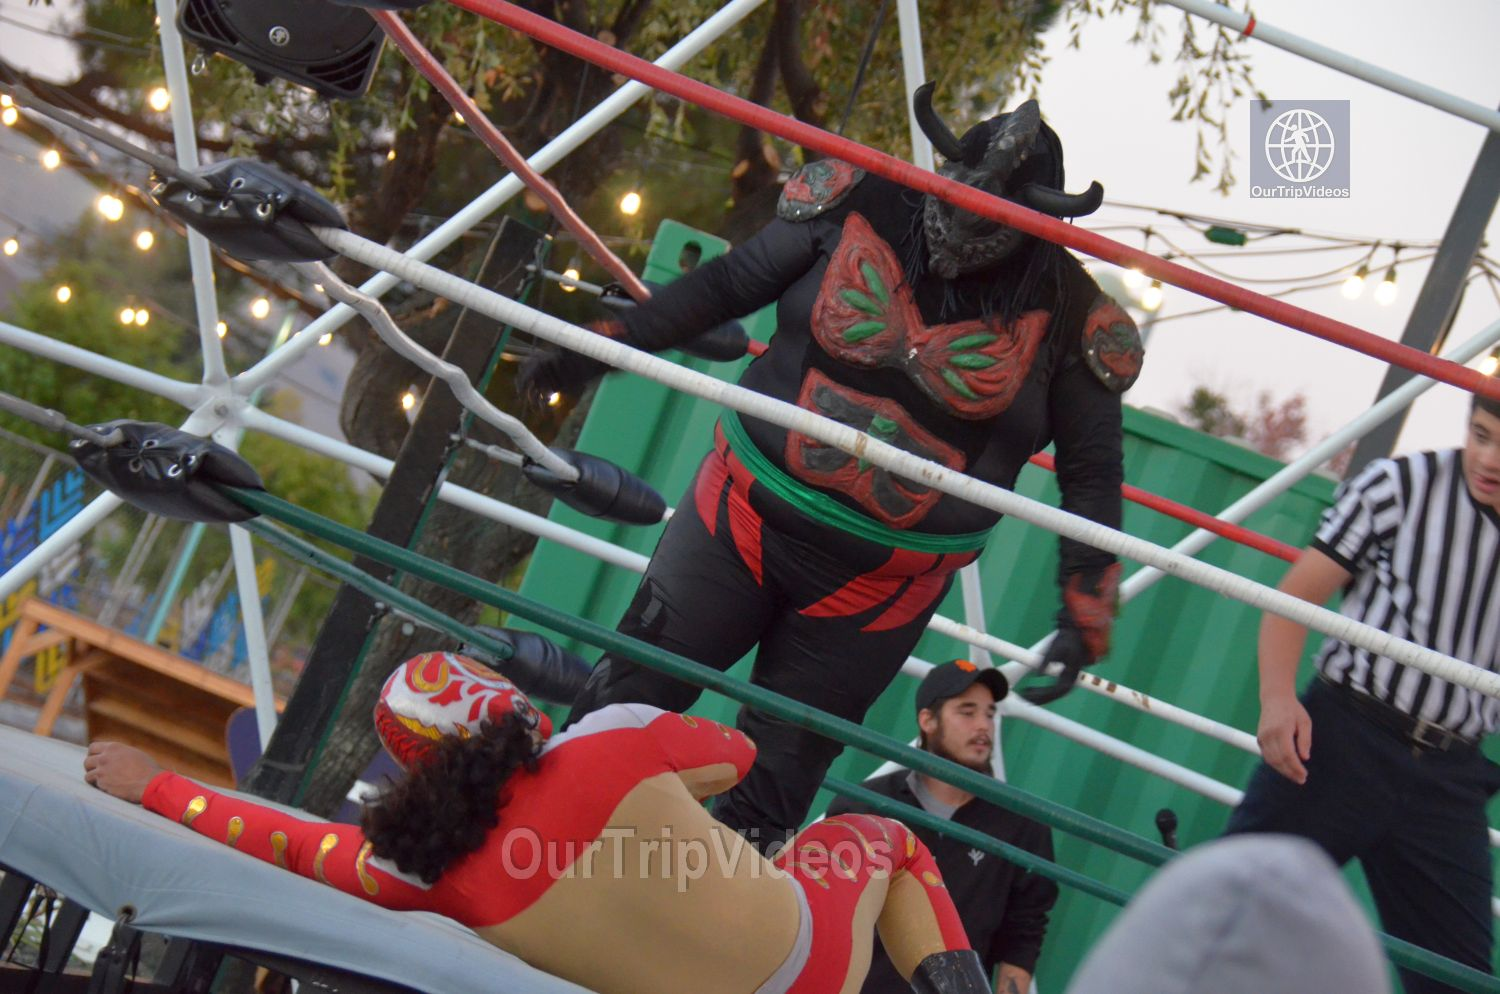 Throwdown at the Thunderdome (Luchador Wrestling), Fremont, CA, USA - Picture 9 of 25